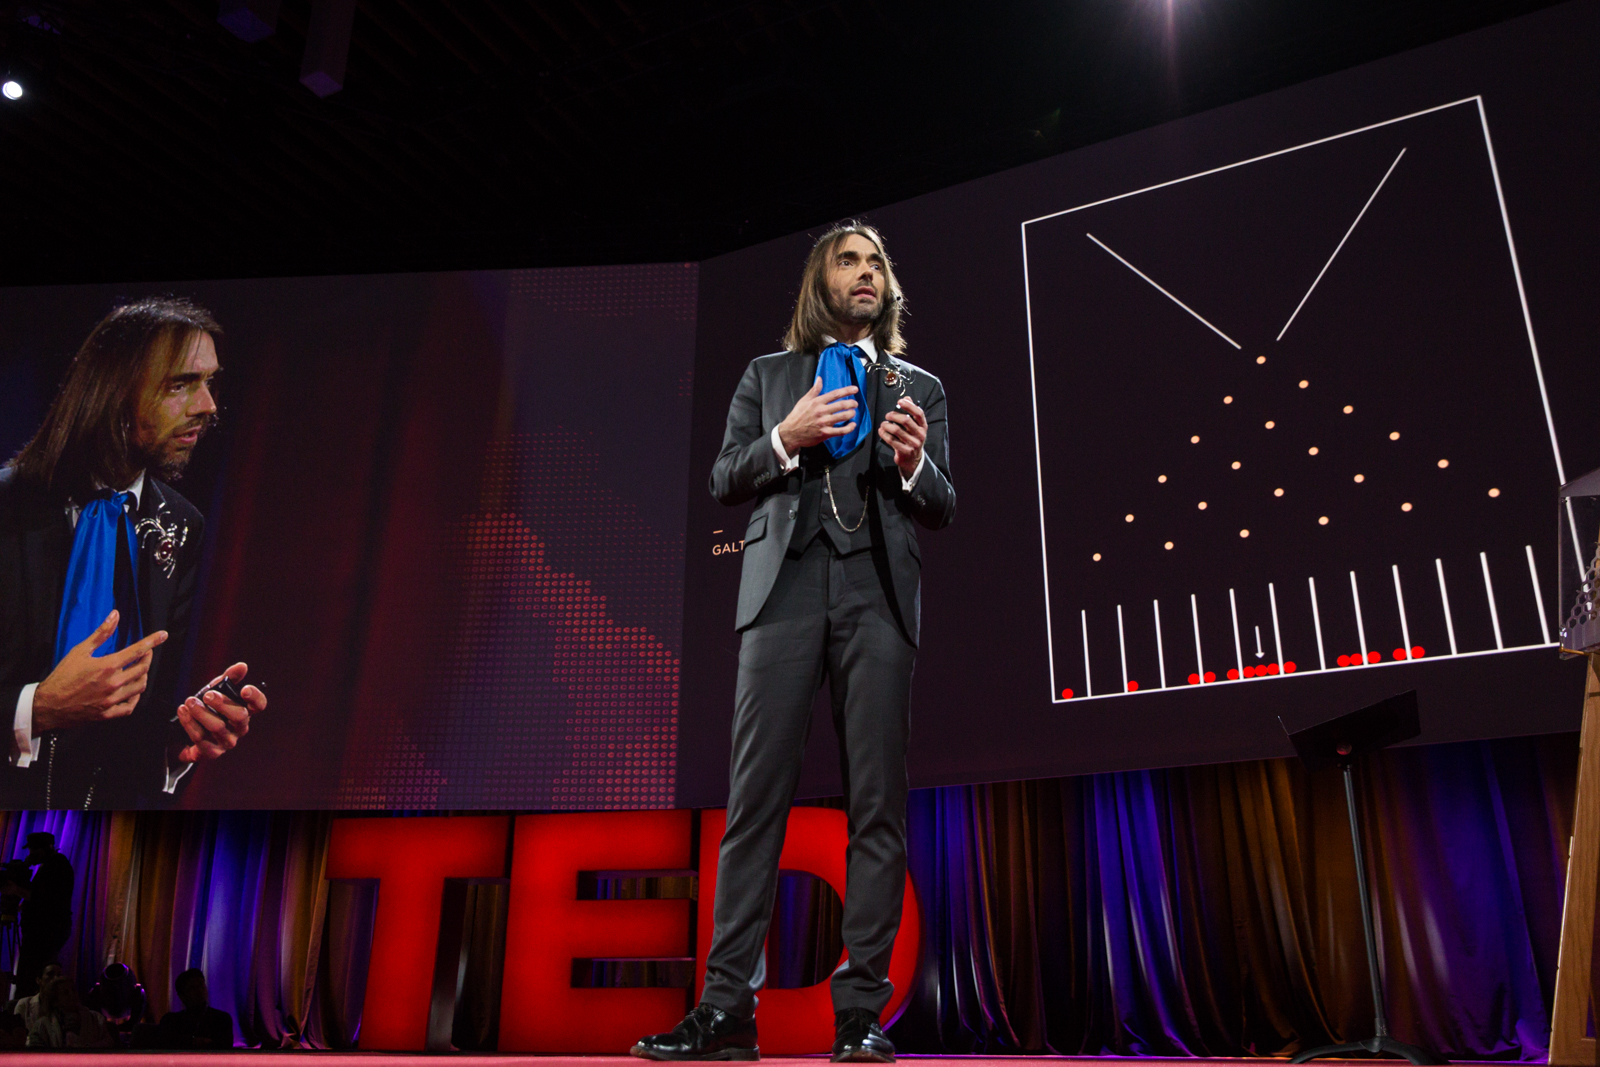 Cédric Villani speaks at TED2016 - Dream, February 15-19, 2016, Vancouver Convention Center, Vancouver, Canada. Photo: Bret Hartman / TED